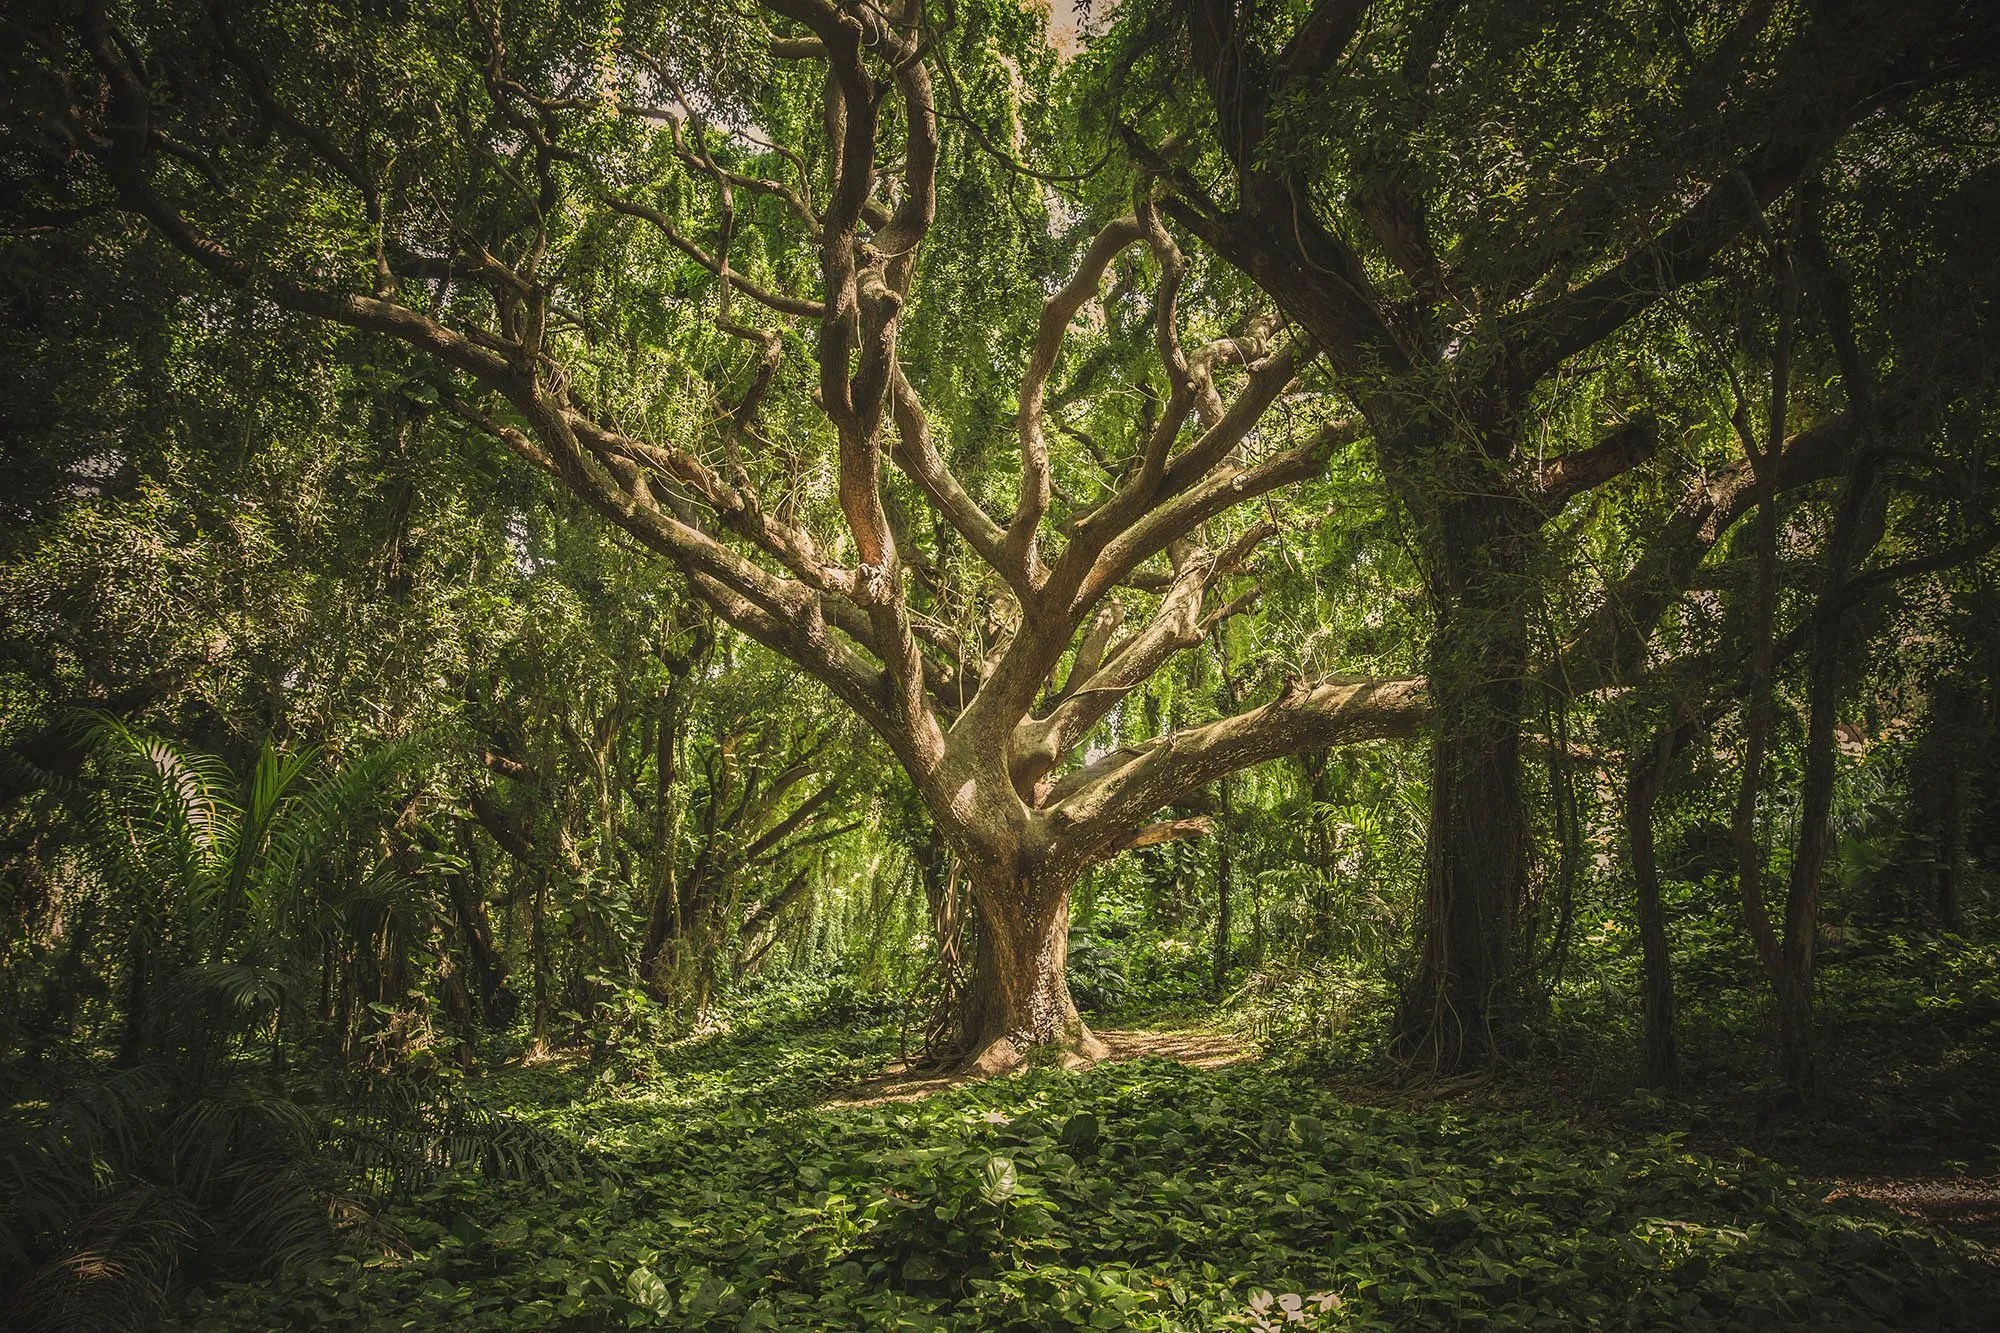 POETRY | In The Deep Forest by PL Weng